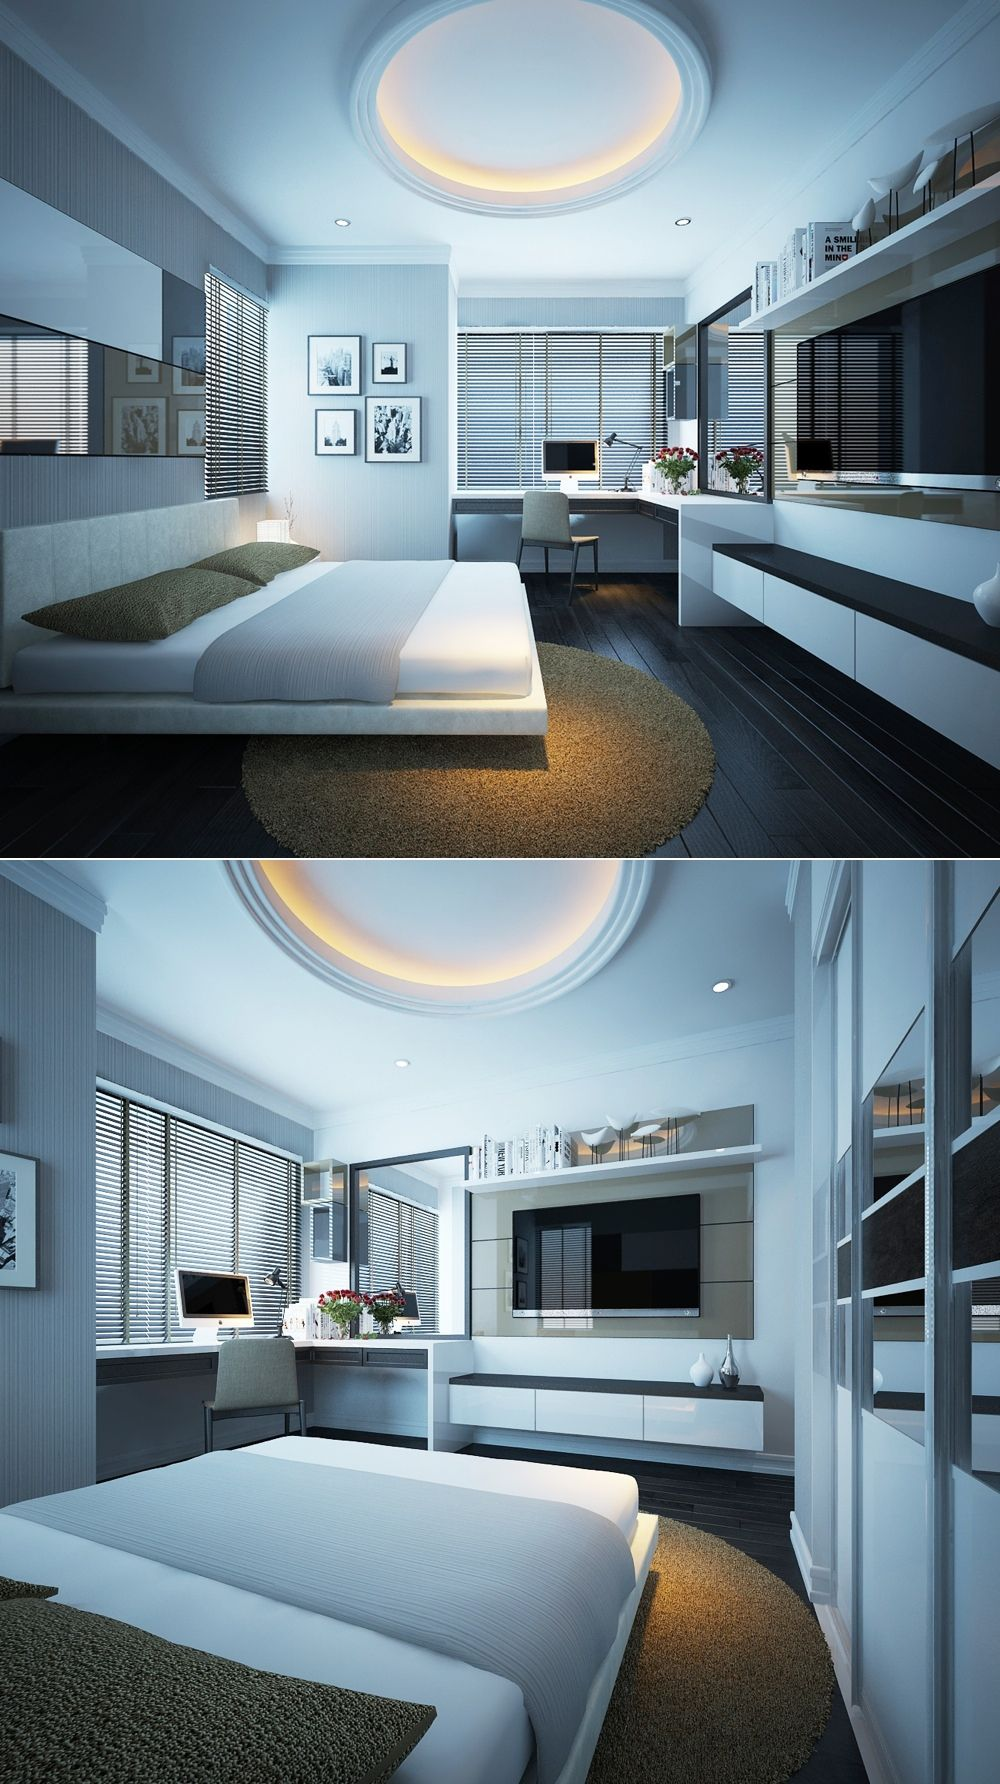 ultra modern luxury bedroom set design ideas with elegant white fitted tv cabinets with storage and